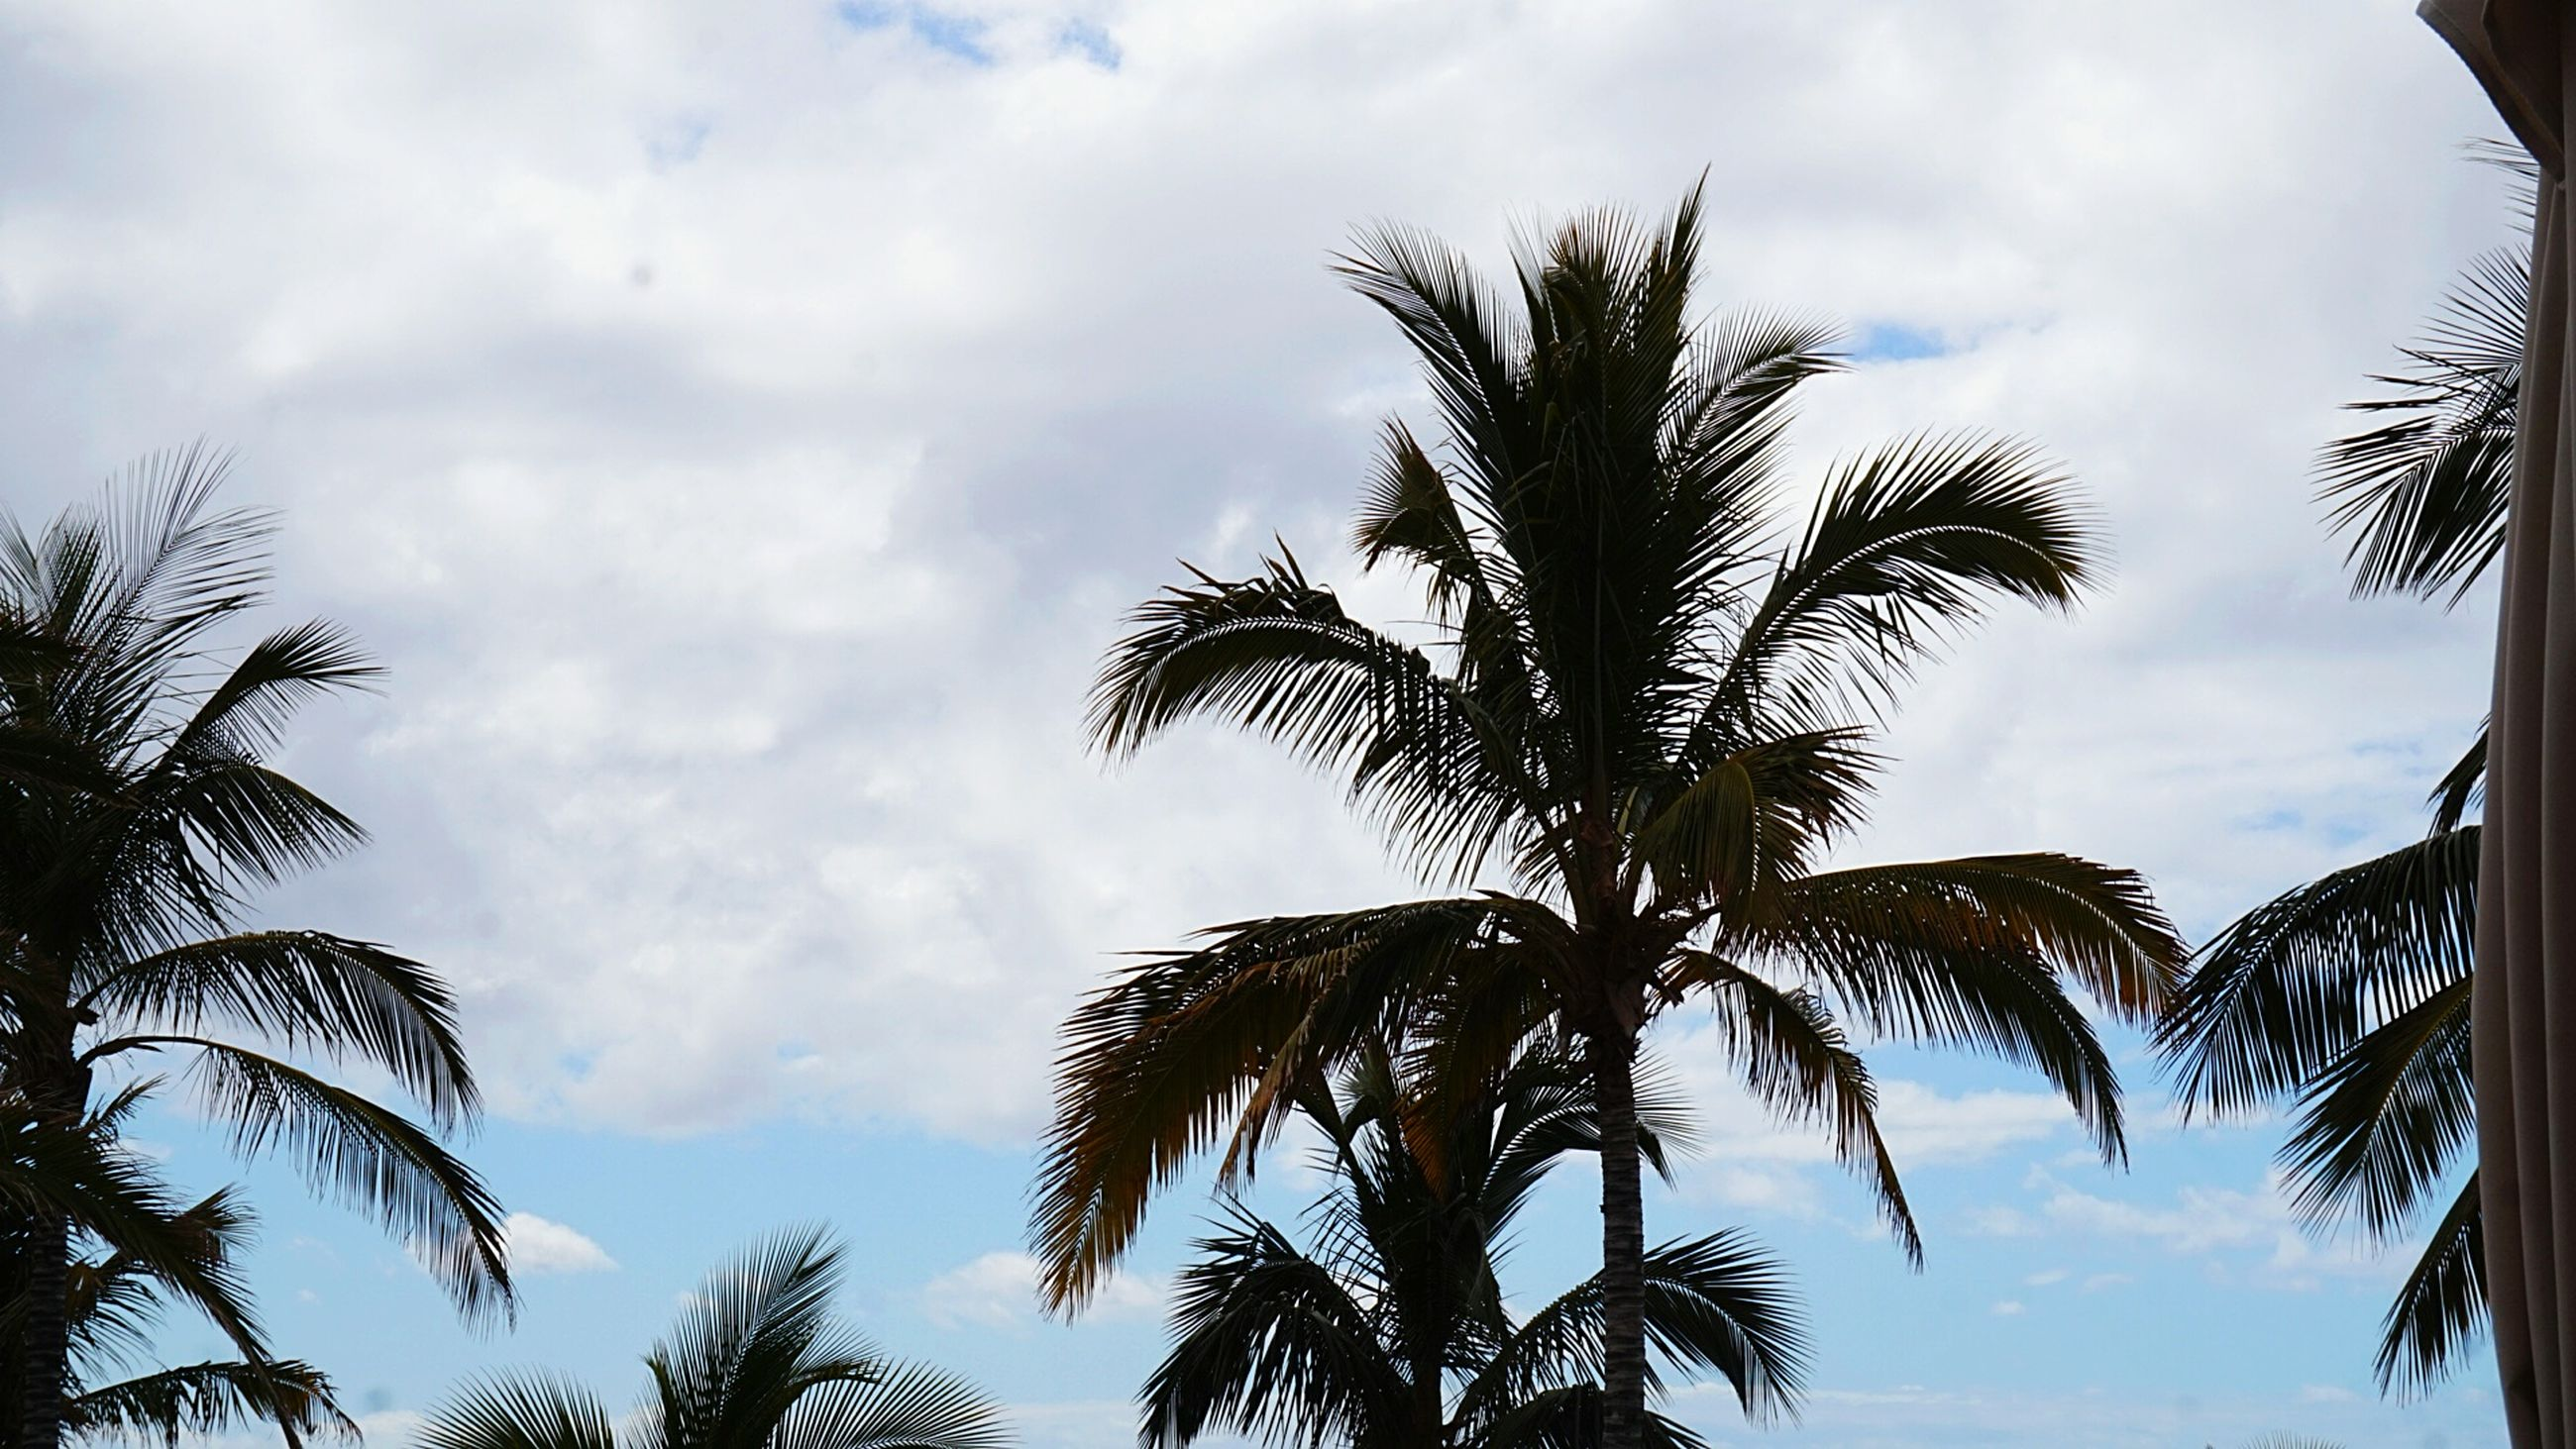 sky, low angle view, palm tree, tree, nature, cloud - sky, growth, no people, beauty in nature, tranquility, outdoors, day, scenics, branch, close-up